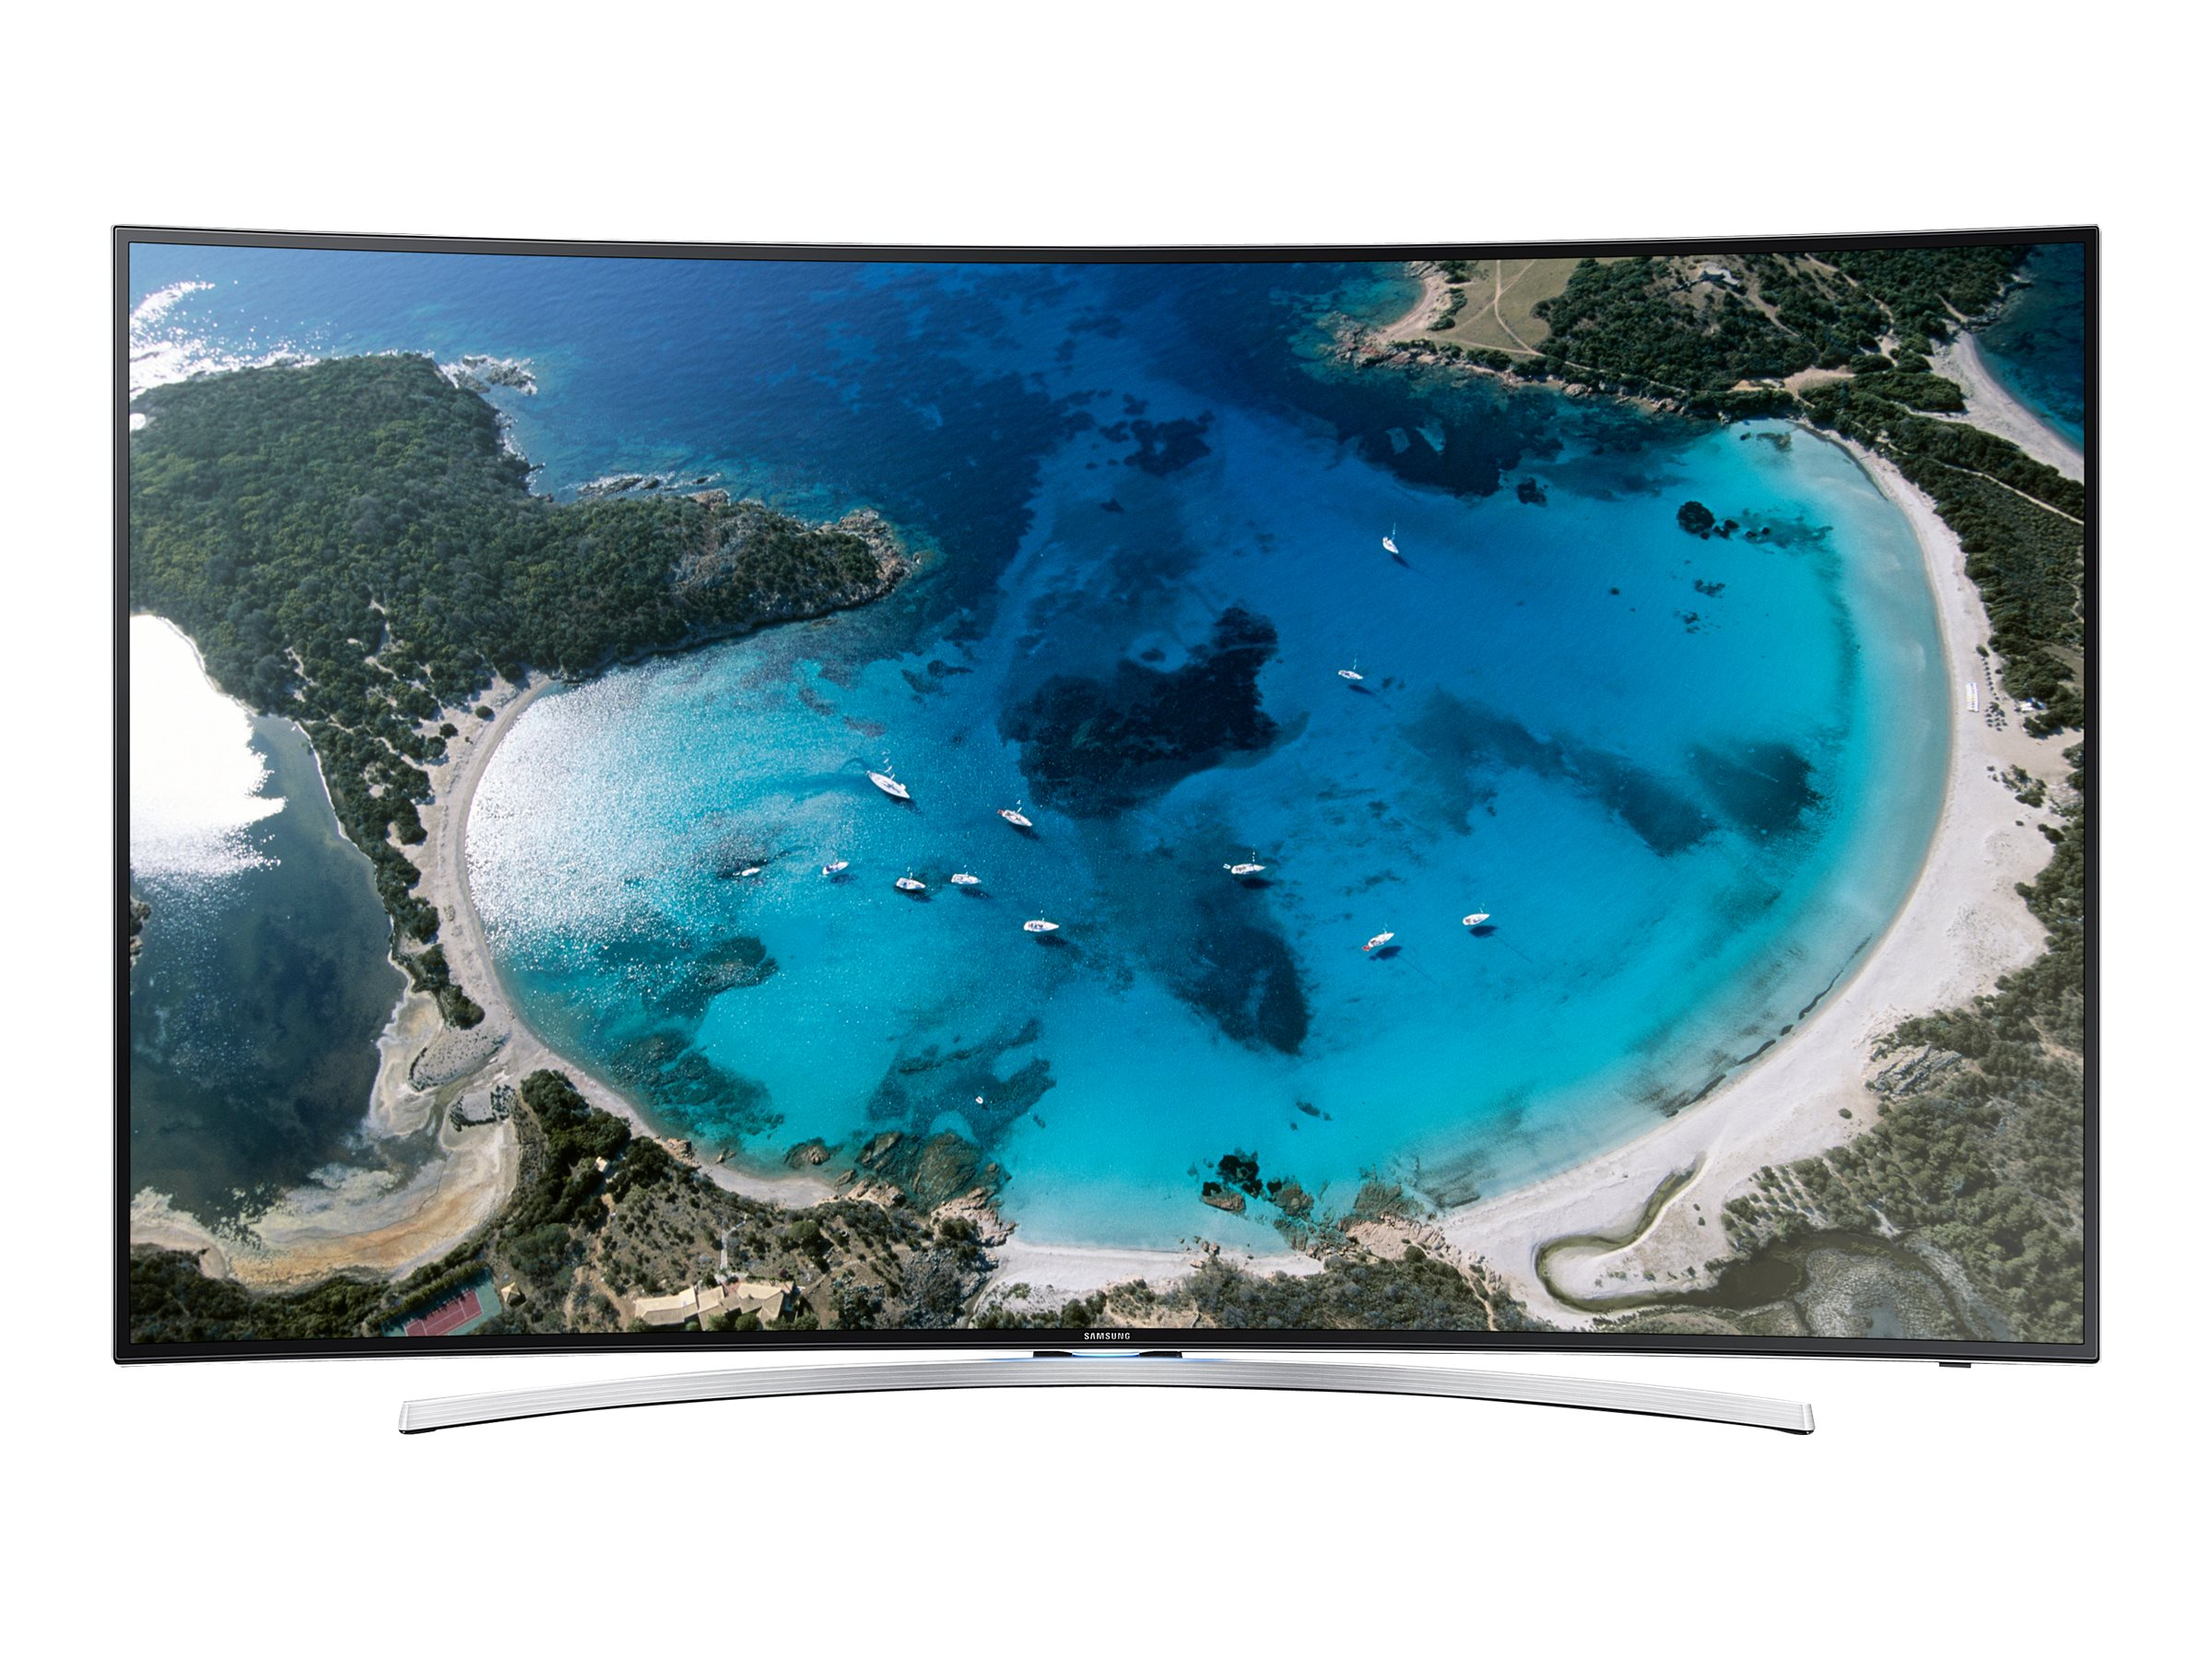 Samsung 55 890 Series Full HD LED-LCD Hospitality TV, Black